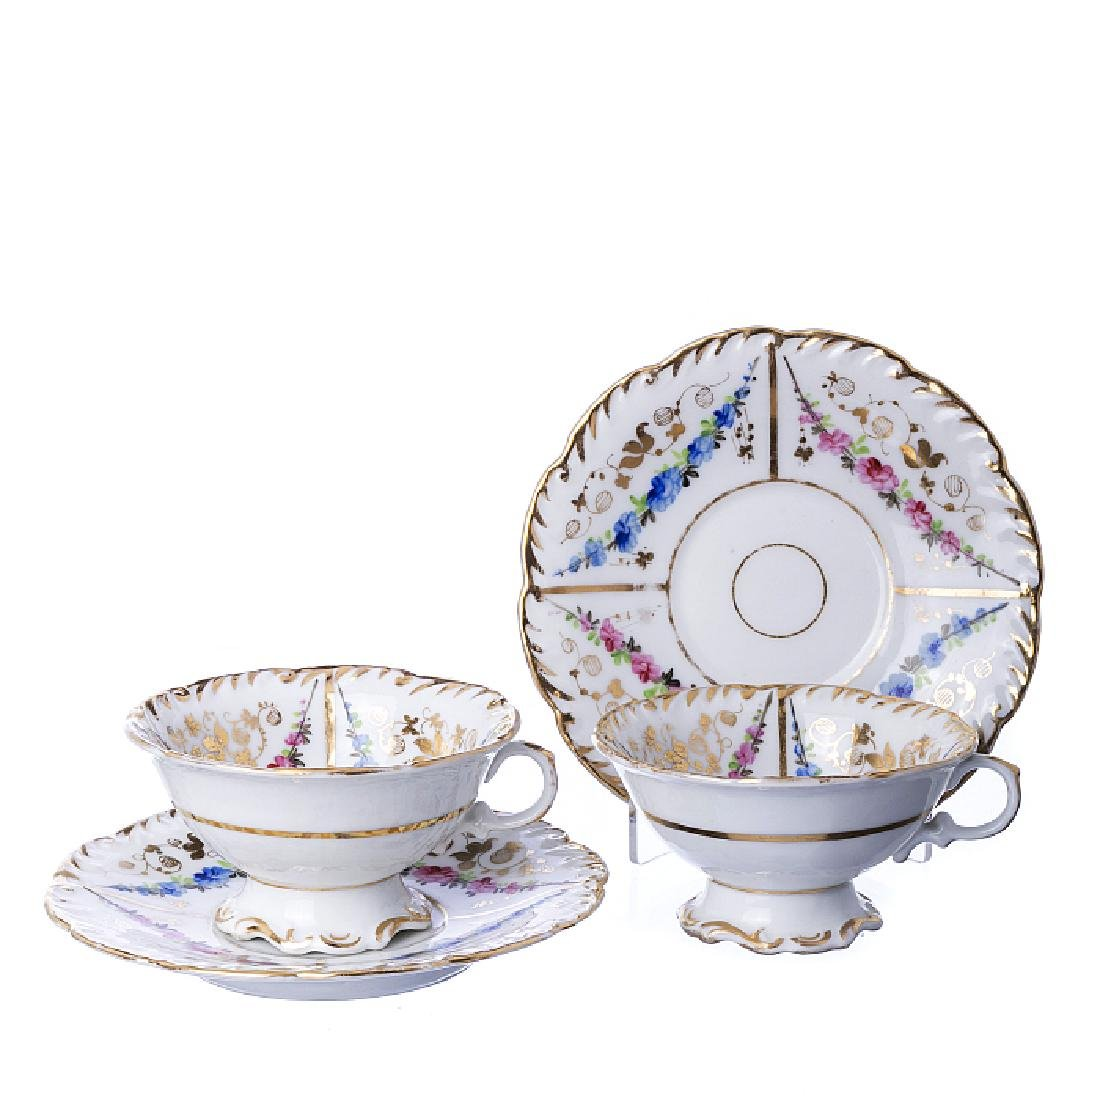 Six cups, saucers in French porcelain